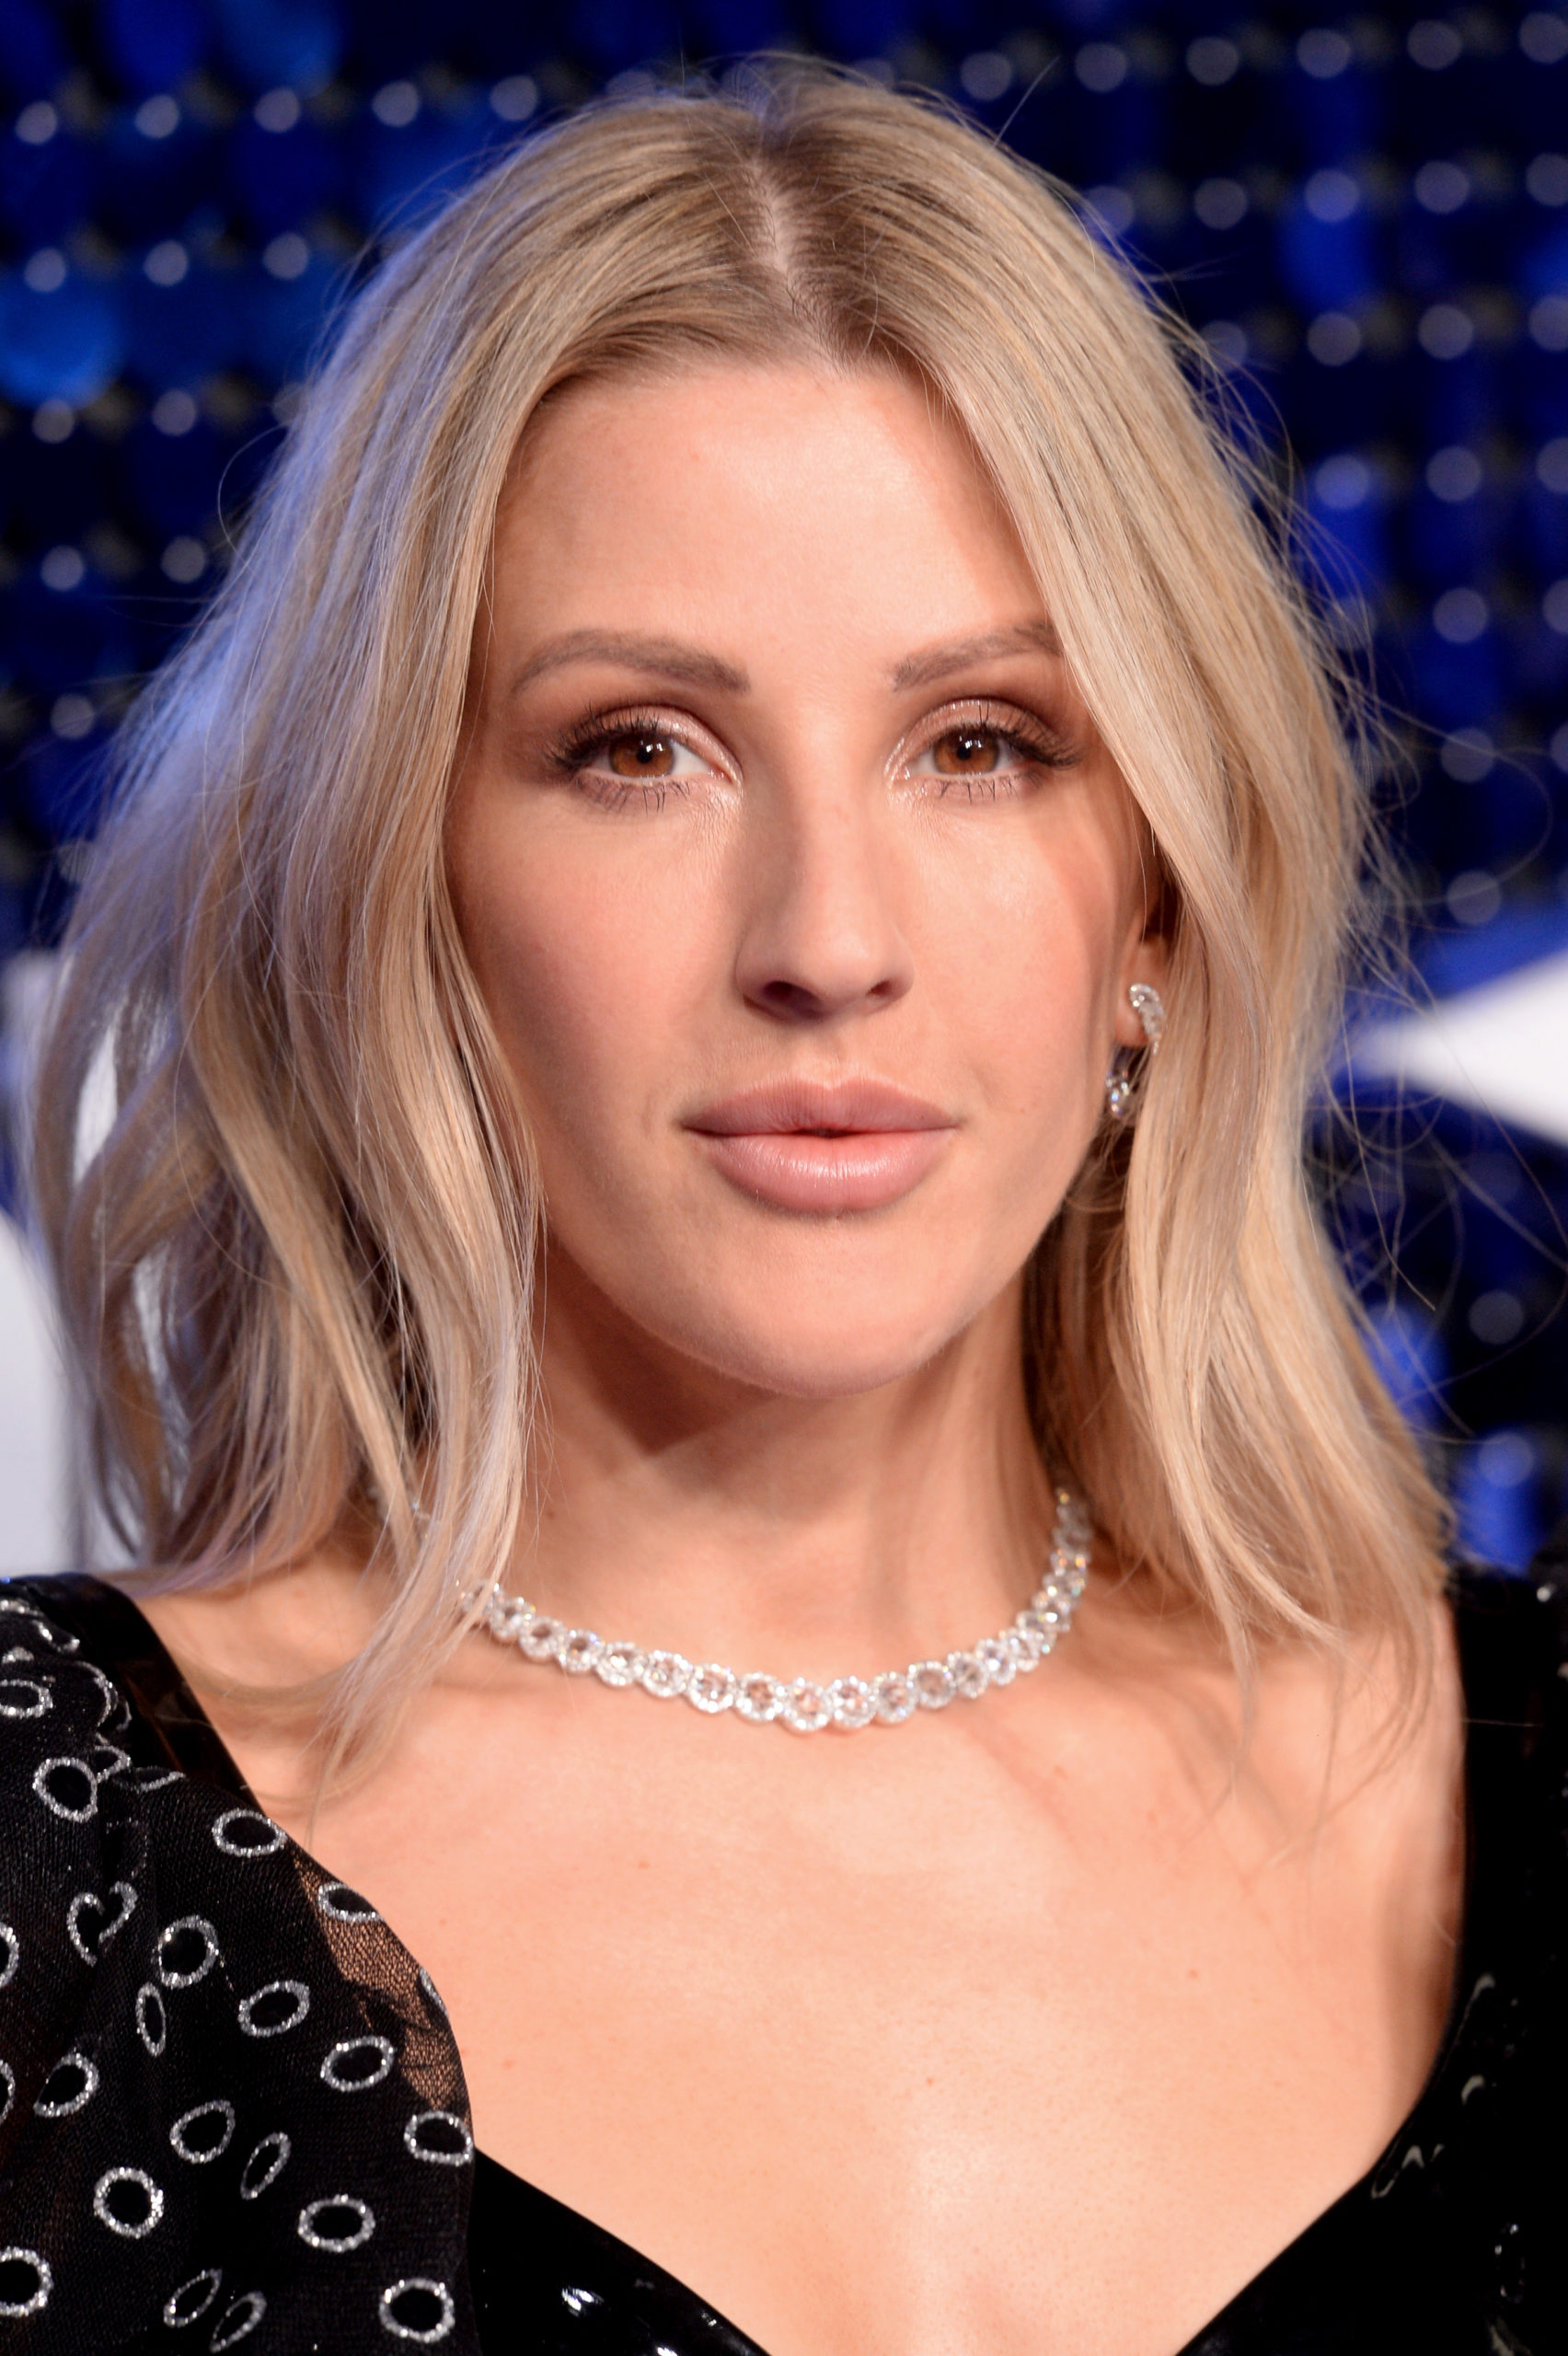 Ellie Goulding at The Global Awards 2020